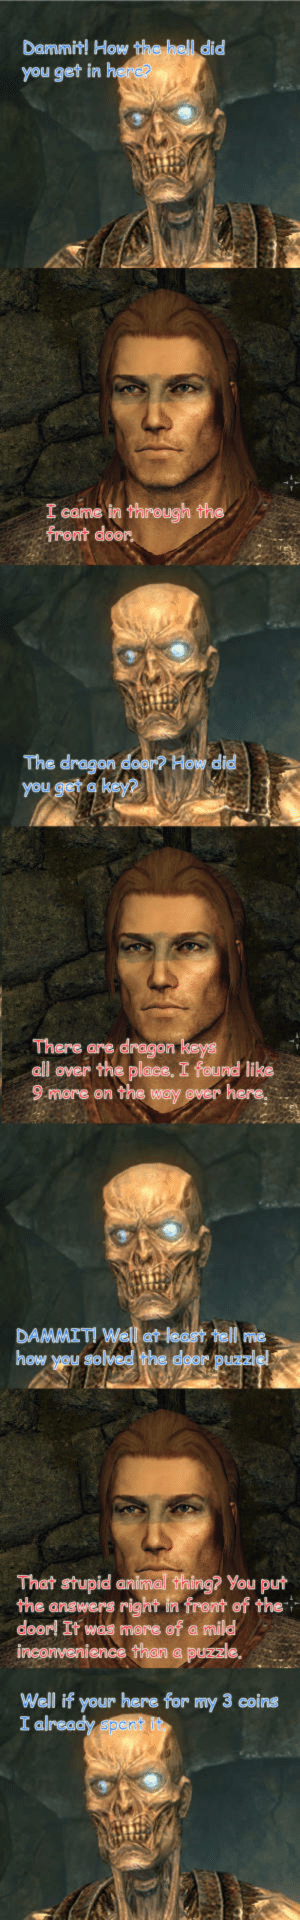 Skyrim Security: Dammit! How  you get in  did  I came  front door.  The dragon door? How did  you  There are dragon  all over the place. I found like  9 more on the way  over here,  DAAAAA!  DAMMIT! Well at leest tell me  how you  That stupid animal hing? You put  the answers right in front of the+  doorl It was more of a mild  inconvenience than a puzzle  Well if your here for my 3 coins Skyrim Security